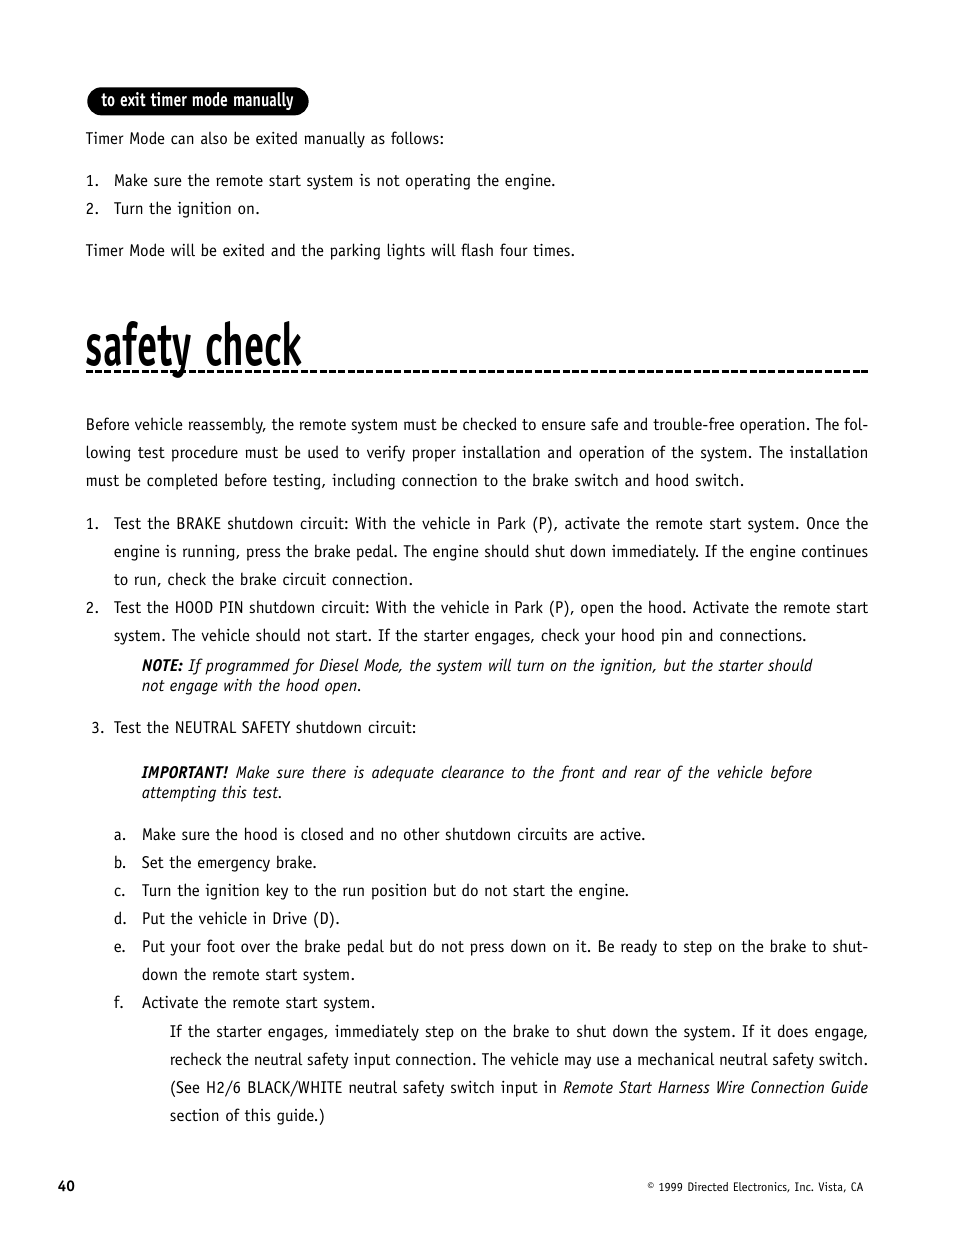 Safety check   Directed Electronics Automate 552 User Manual   Page 40 / 42